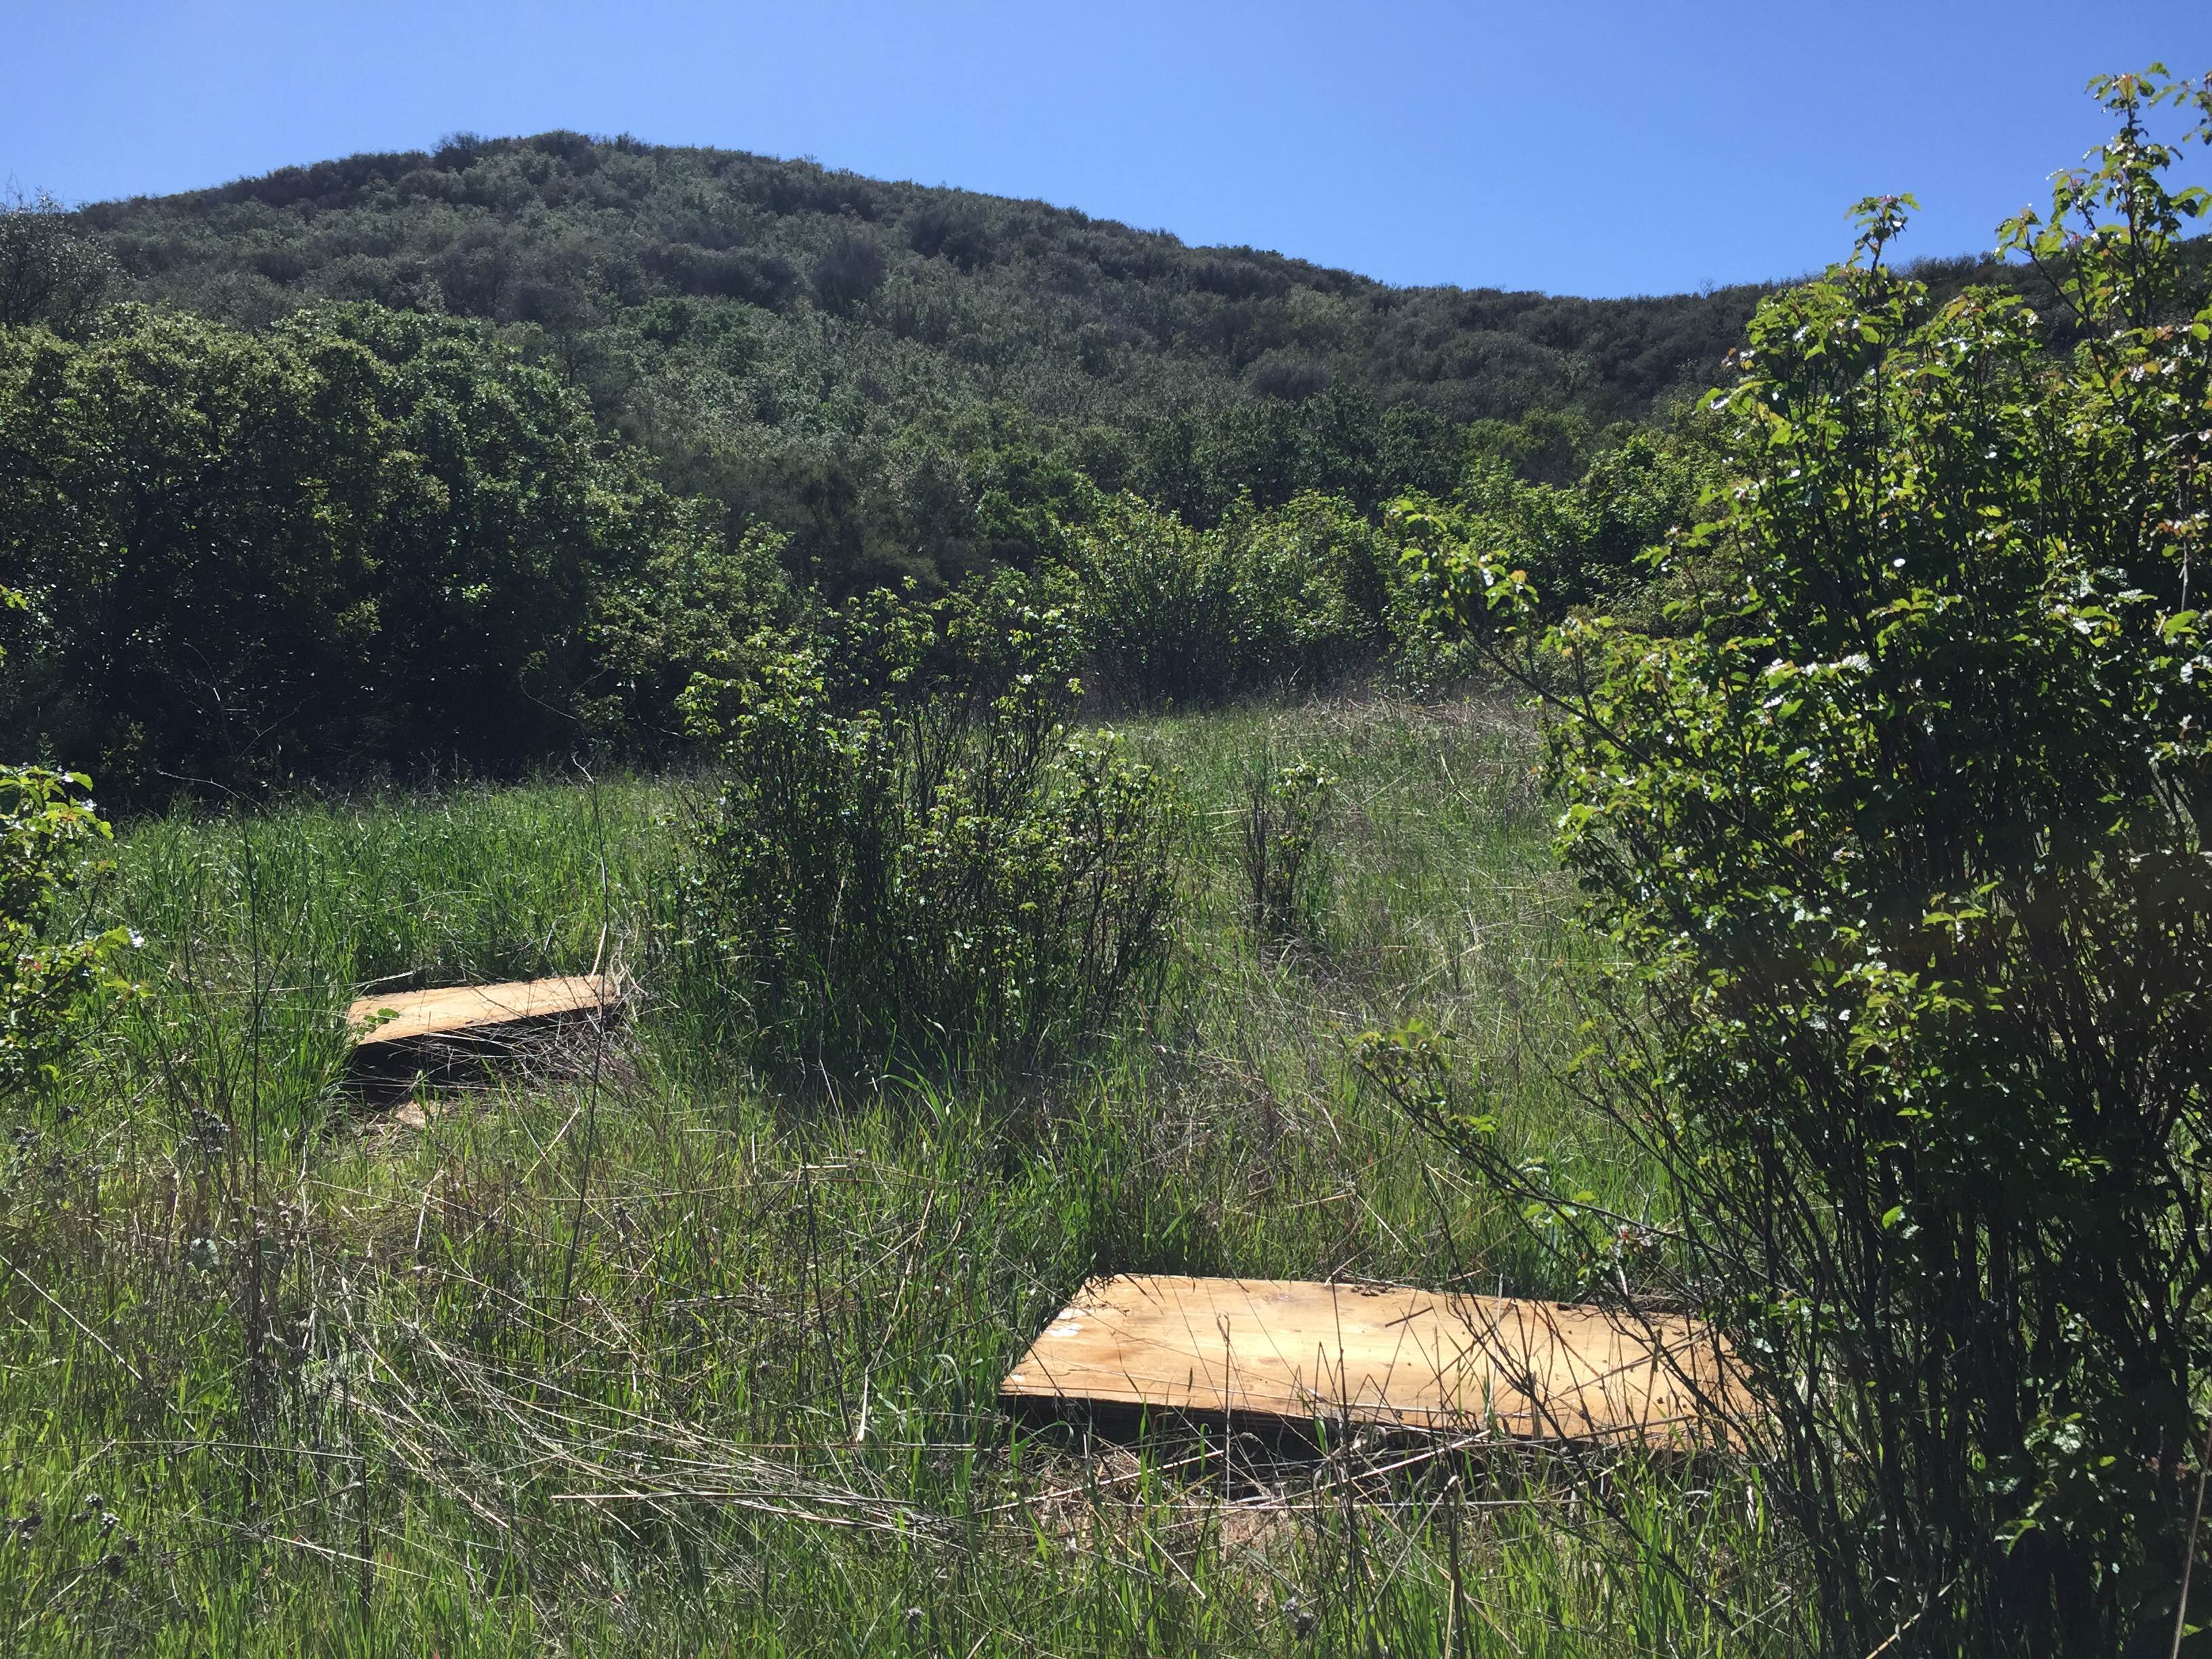 Plywood boards strewn in a field of grass in Decker Canyon of the Santa Monica Mountains. (Photo: National Park Service)